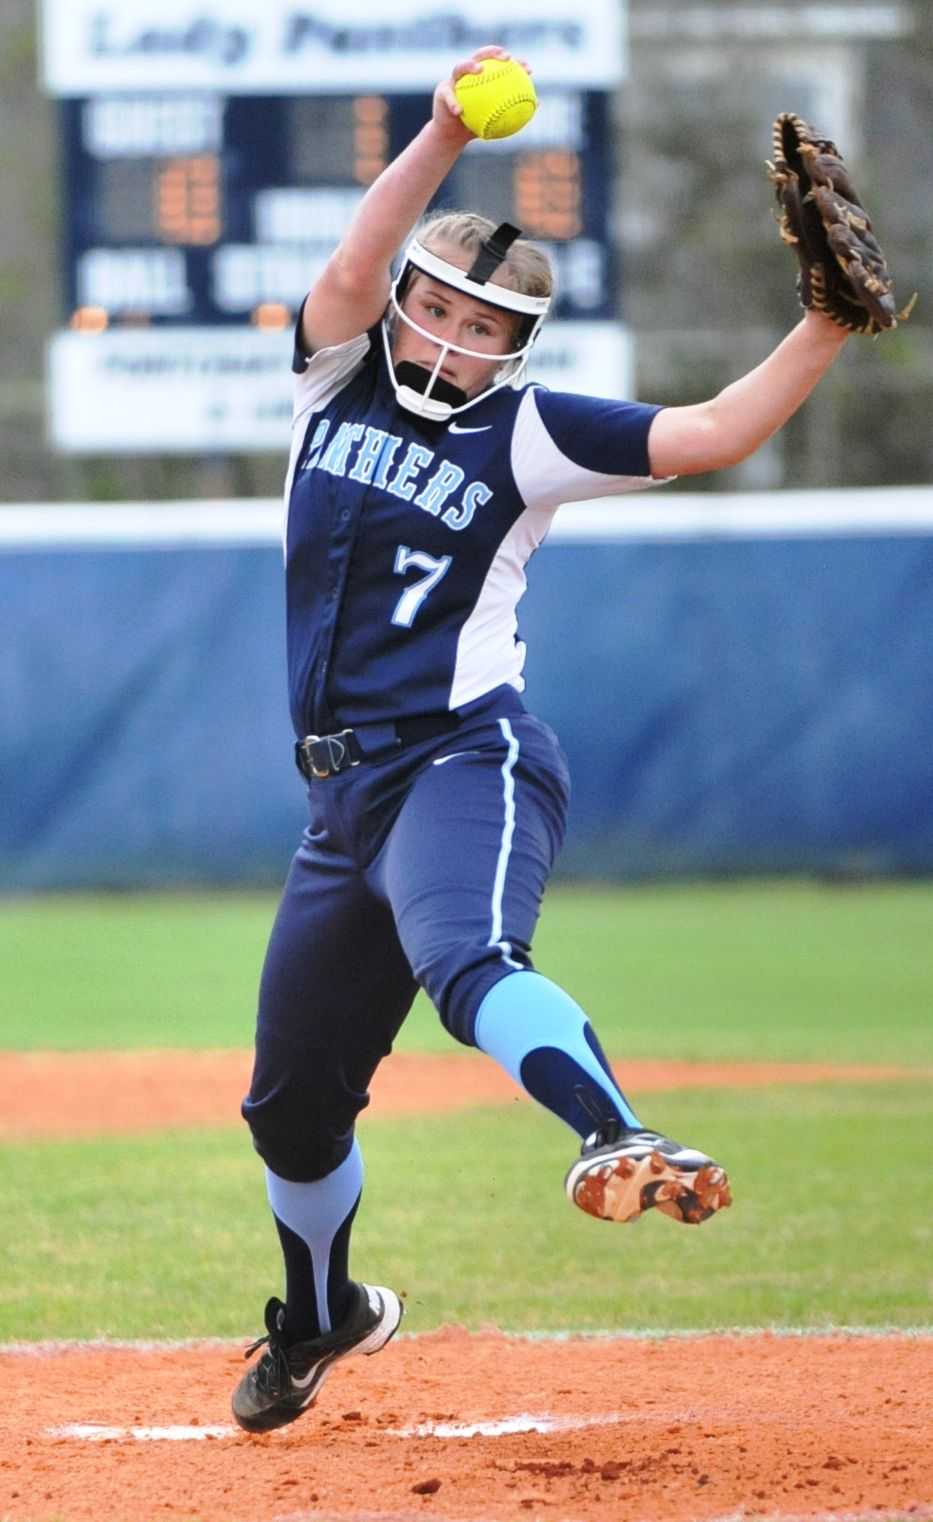 Northshore-Fontainebleau Softball Pic #1